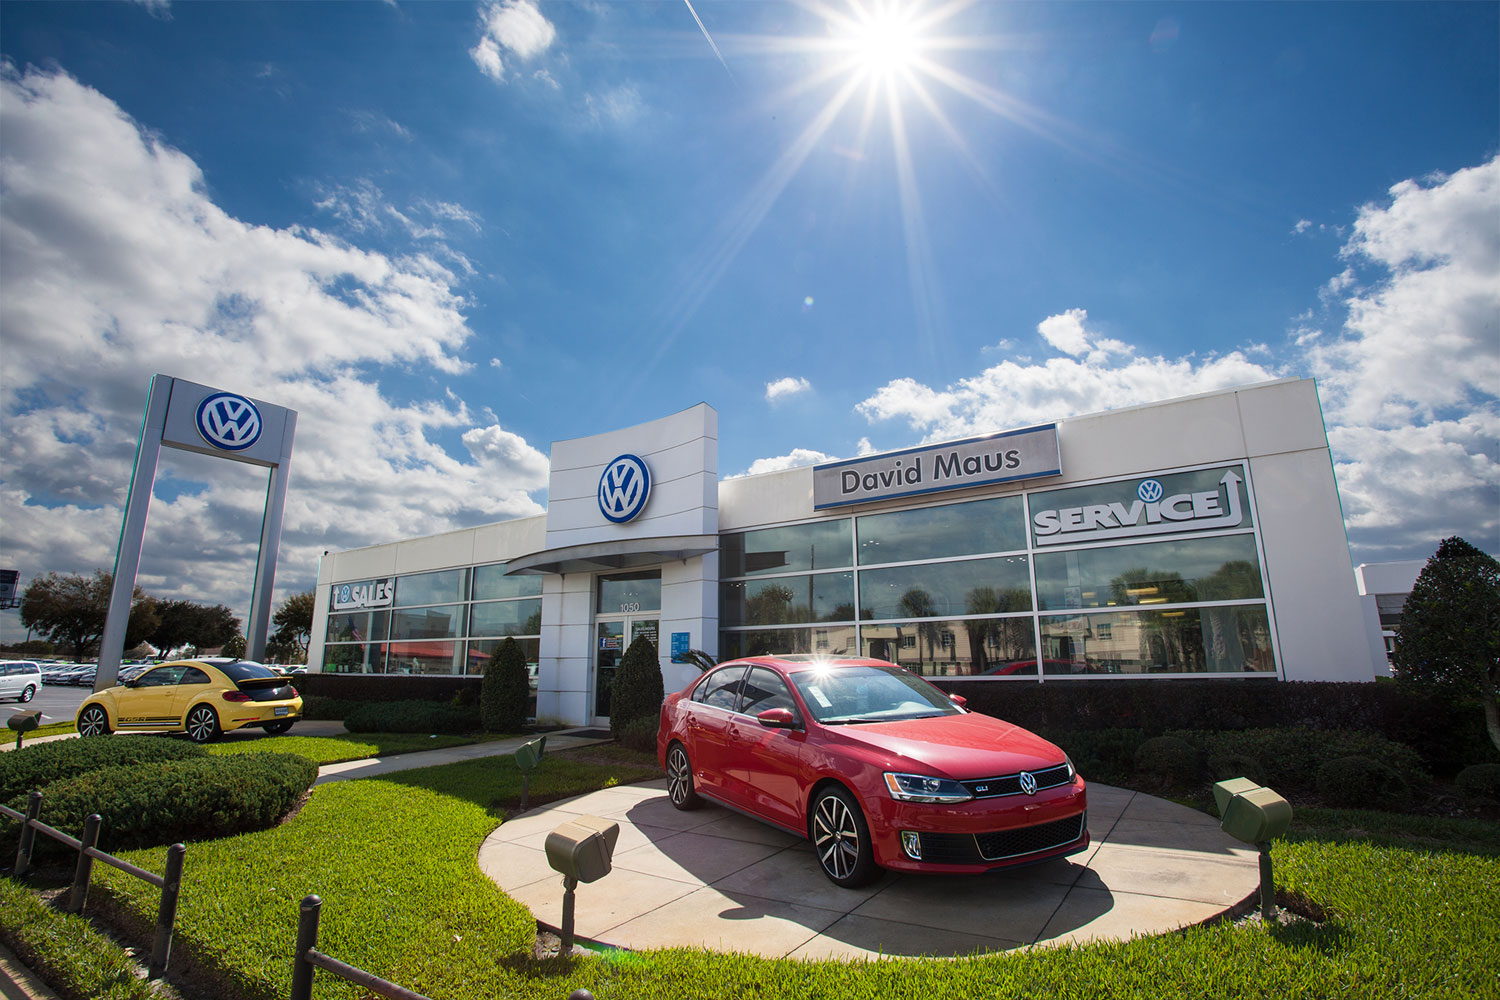 David Maus Volkswagen North Orlando Fl Volkswagen Dealer